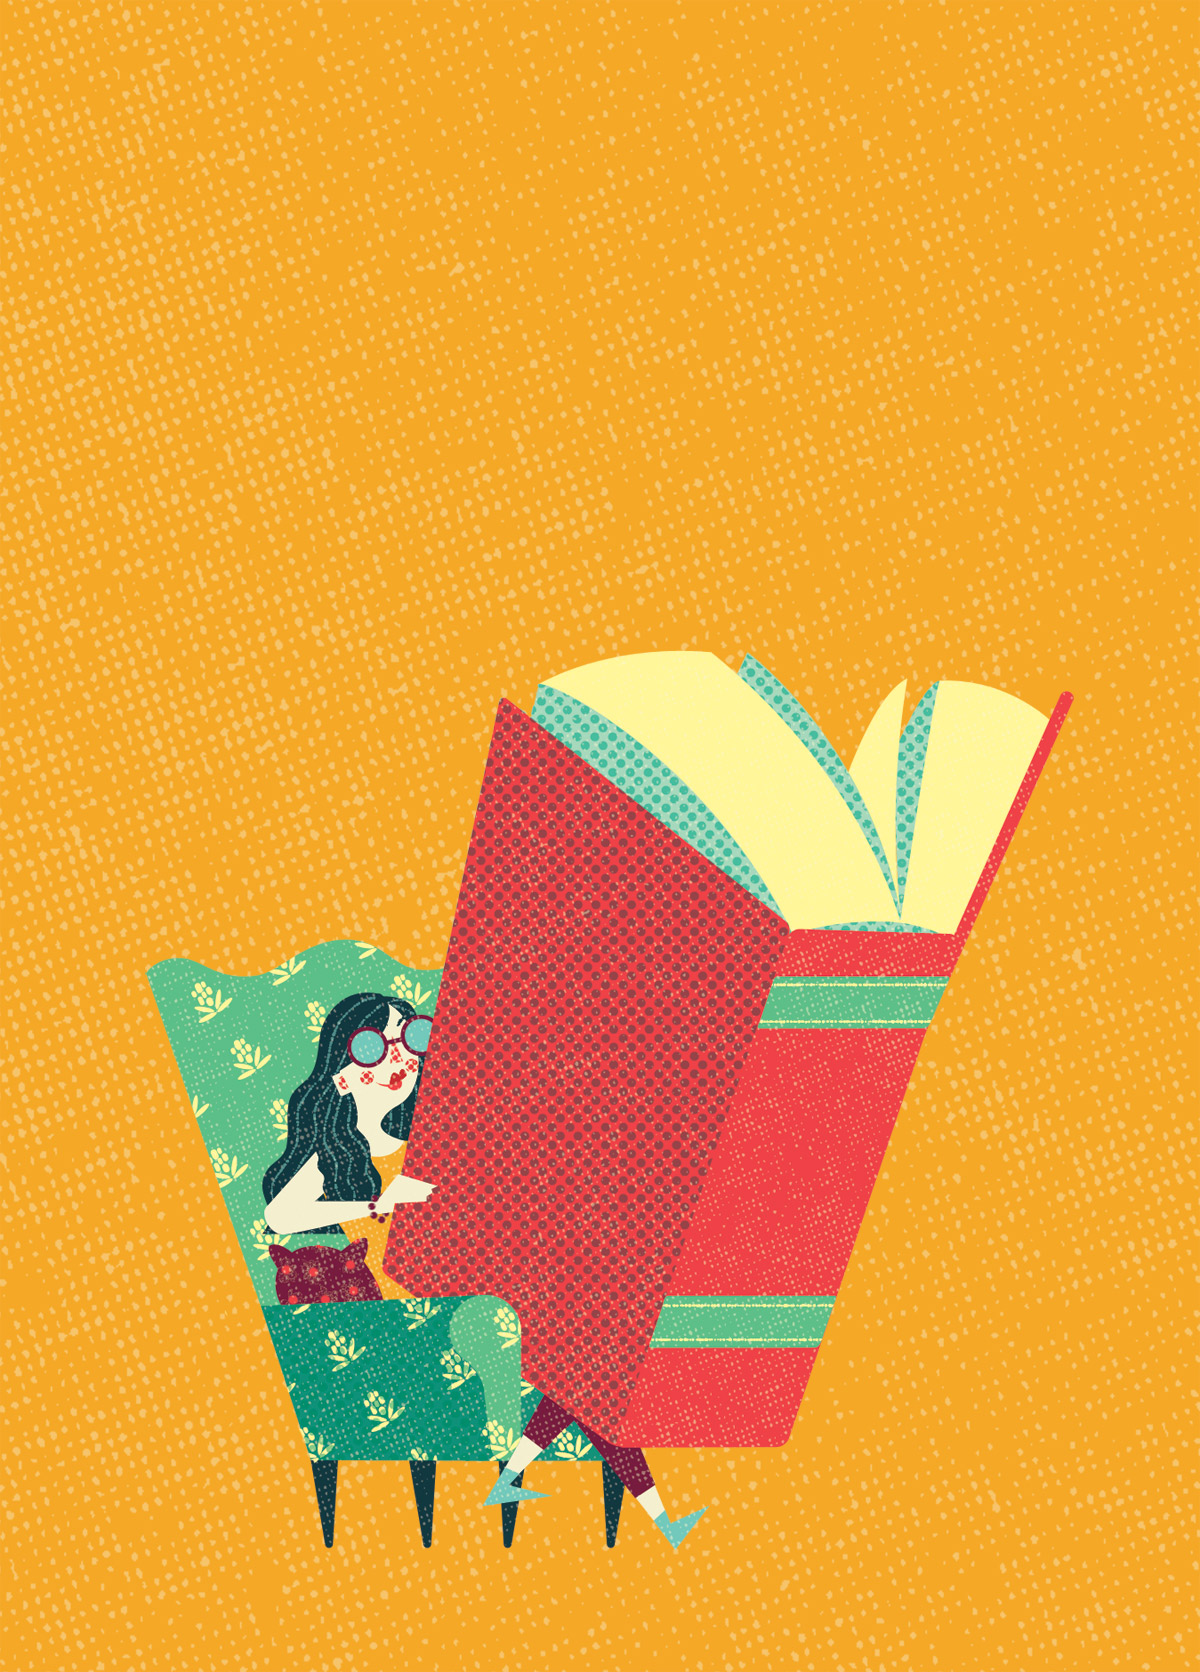 How long is the perfect book?